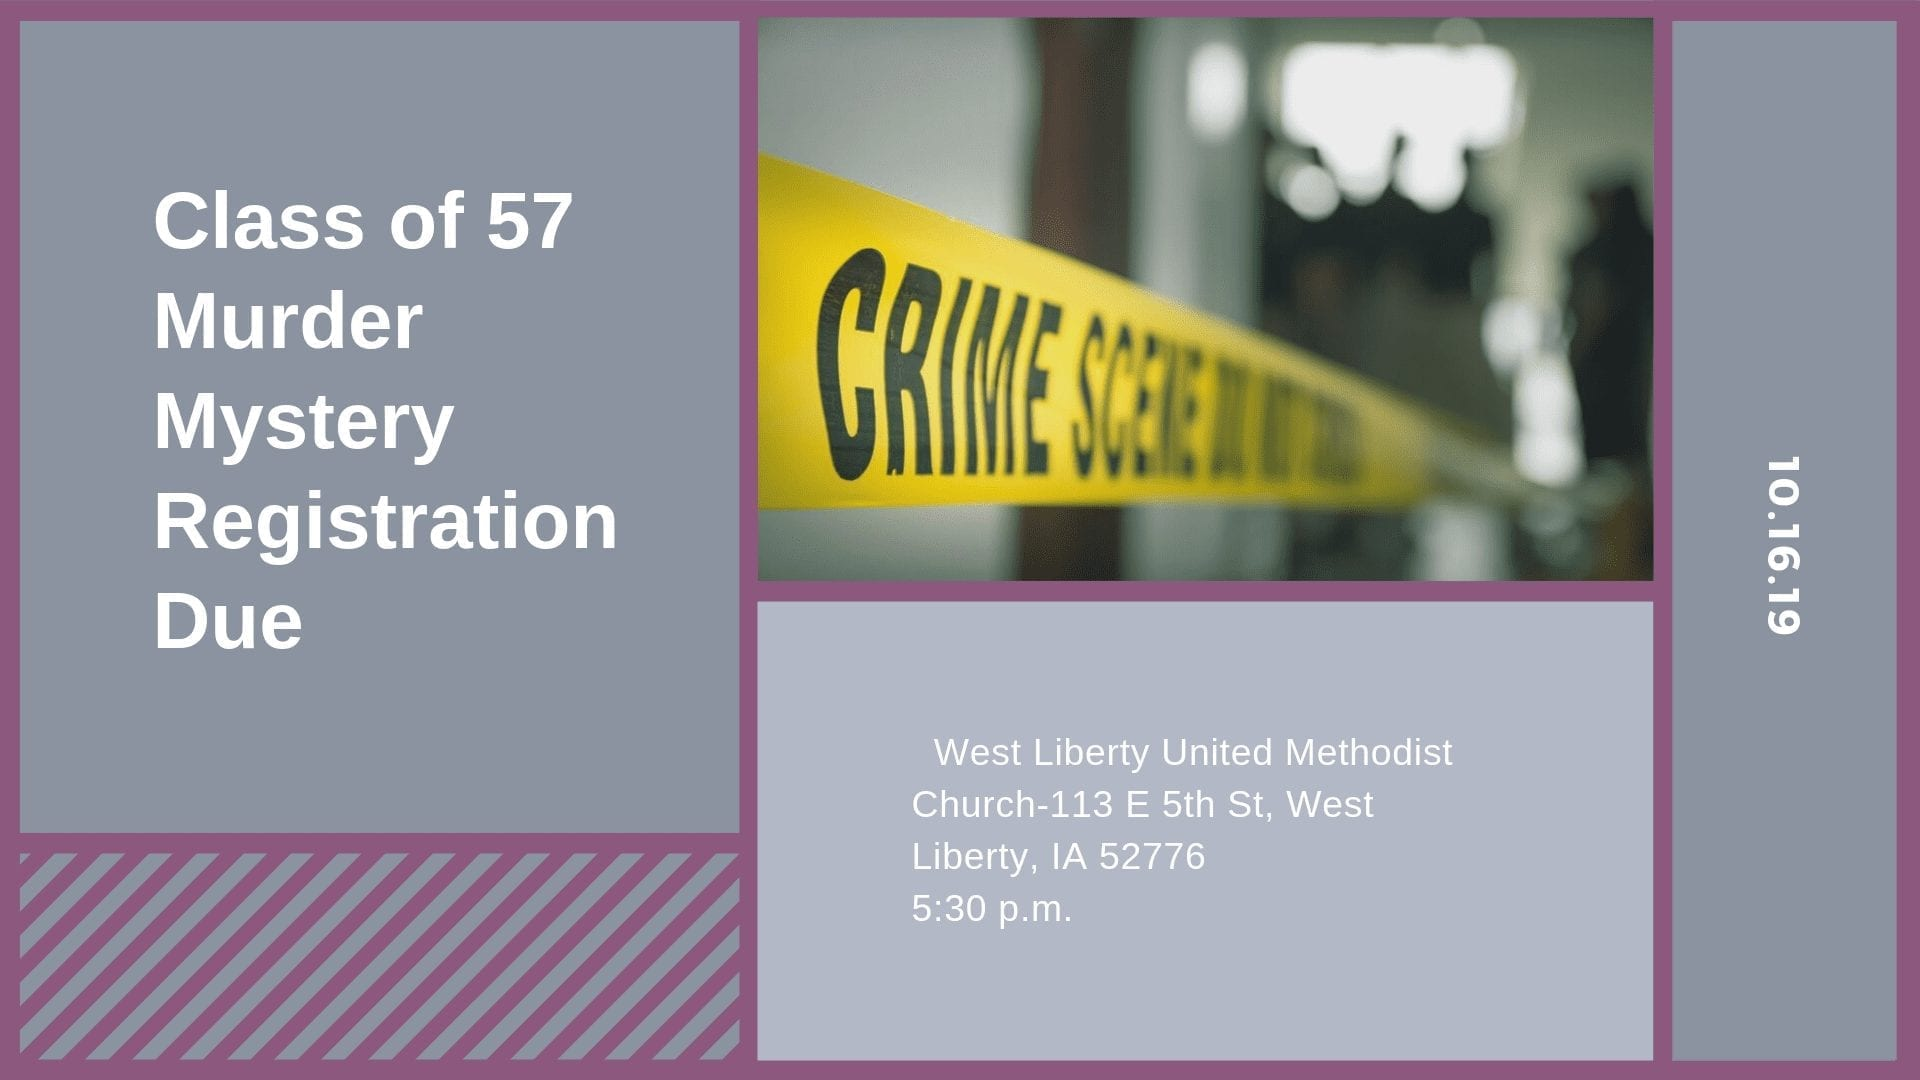 Class of 57 Murder Mystery Registration Due